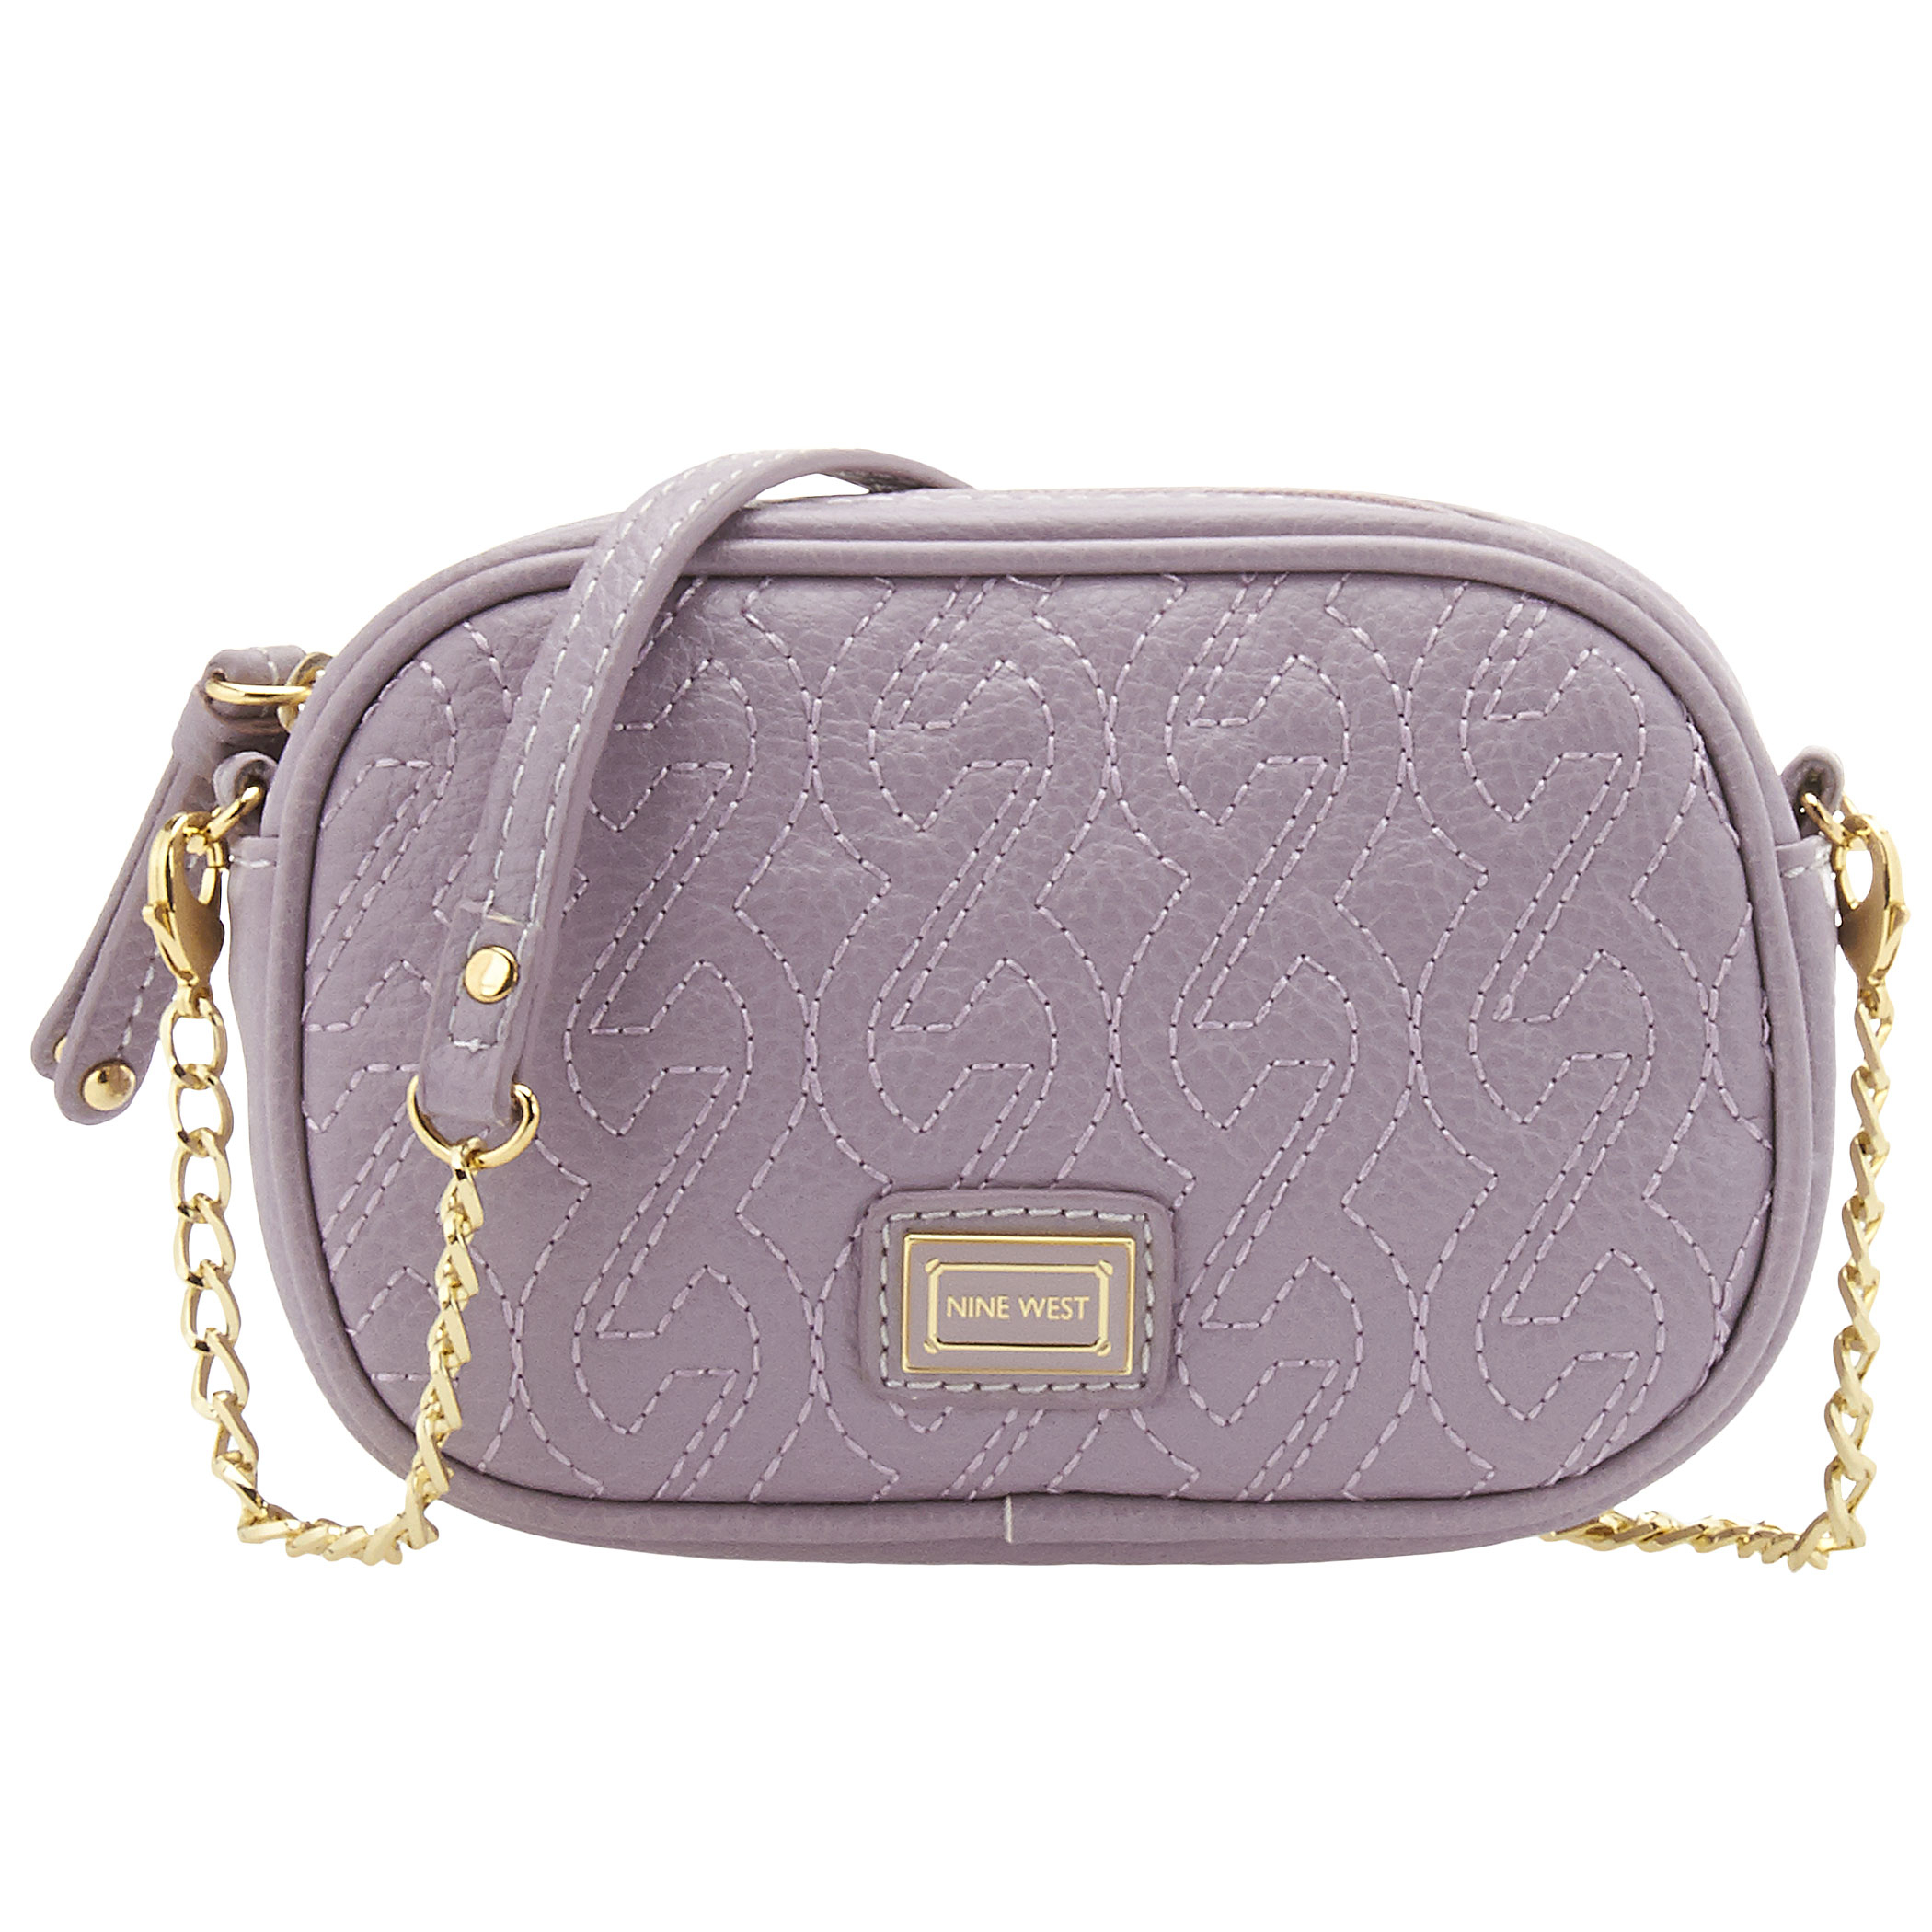 Nine West Quilted Chain Crossbody Bag In Pink Hyacinth